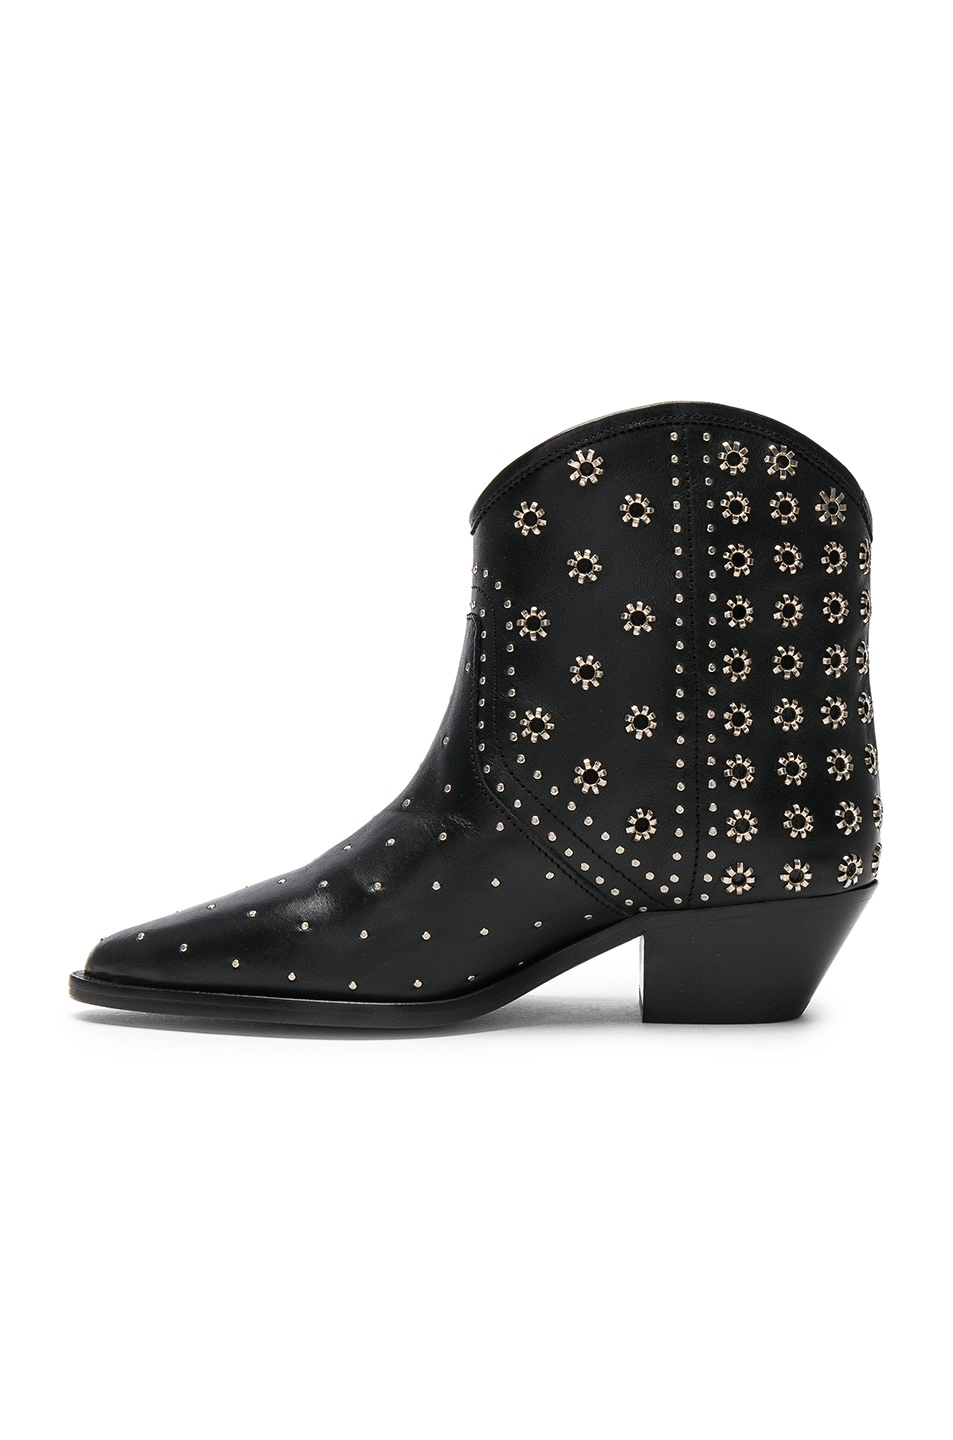 Ankle Boots Isabel Marant Isabel marant domya studded leather ankle boots in black fwrd image 5 of isabel marant domya studded leather ankle boots in black sisterspd